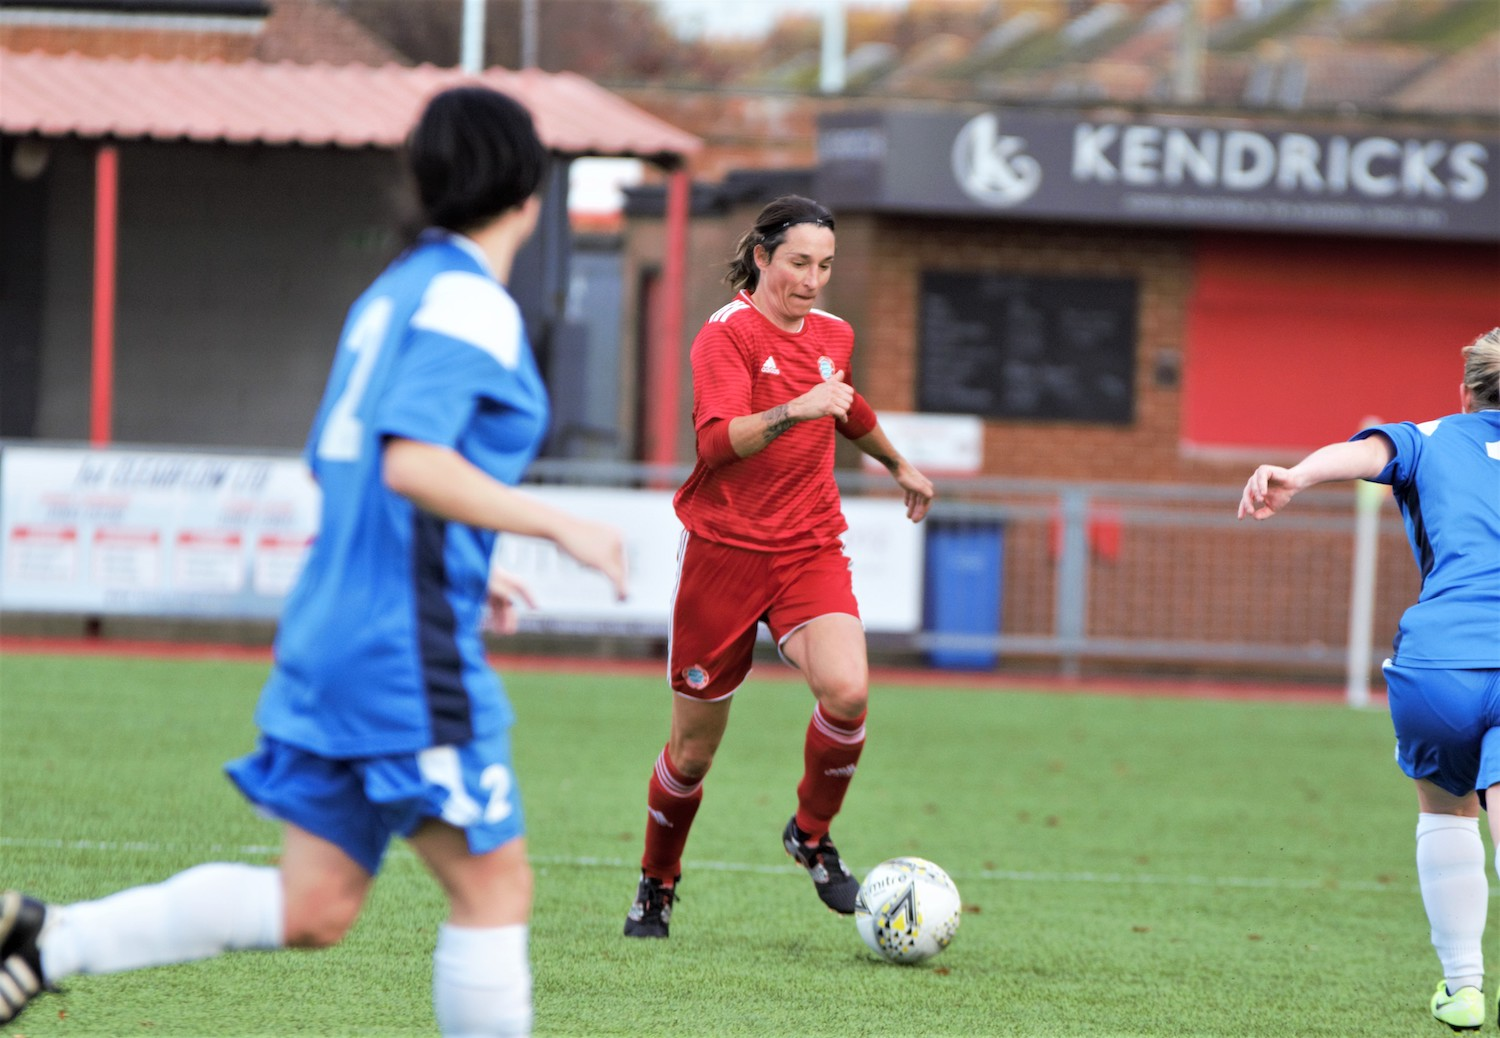 Read the full article - Reds return to winning ways to make it nine straight league victories